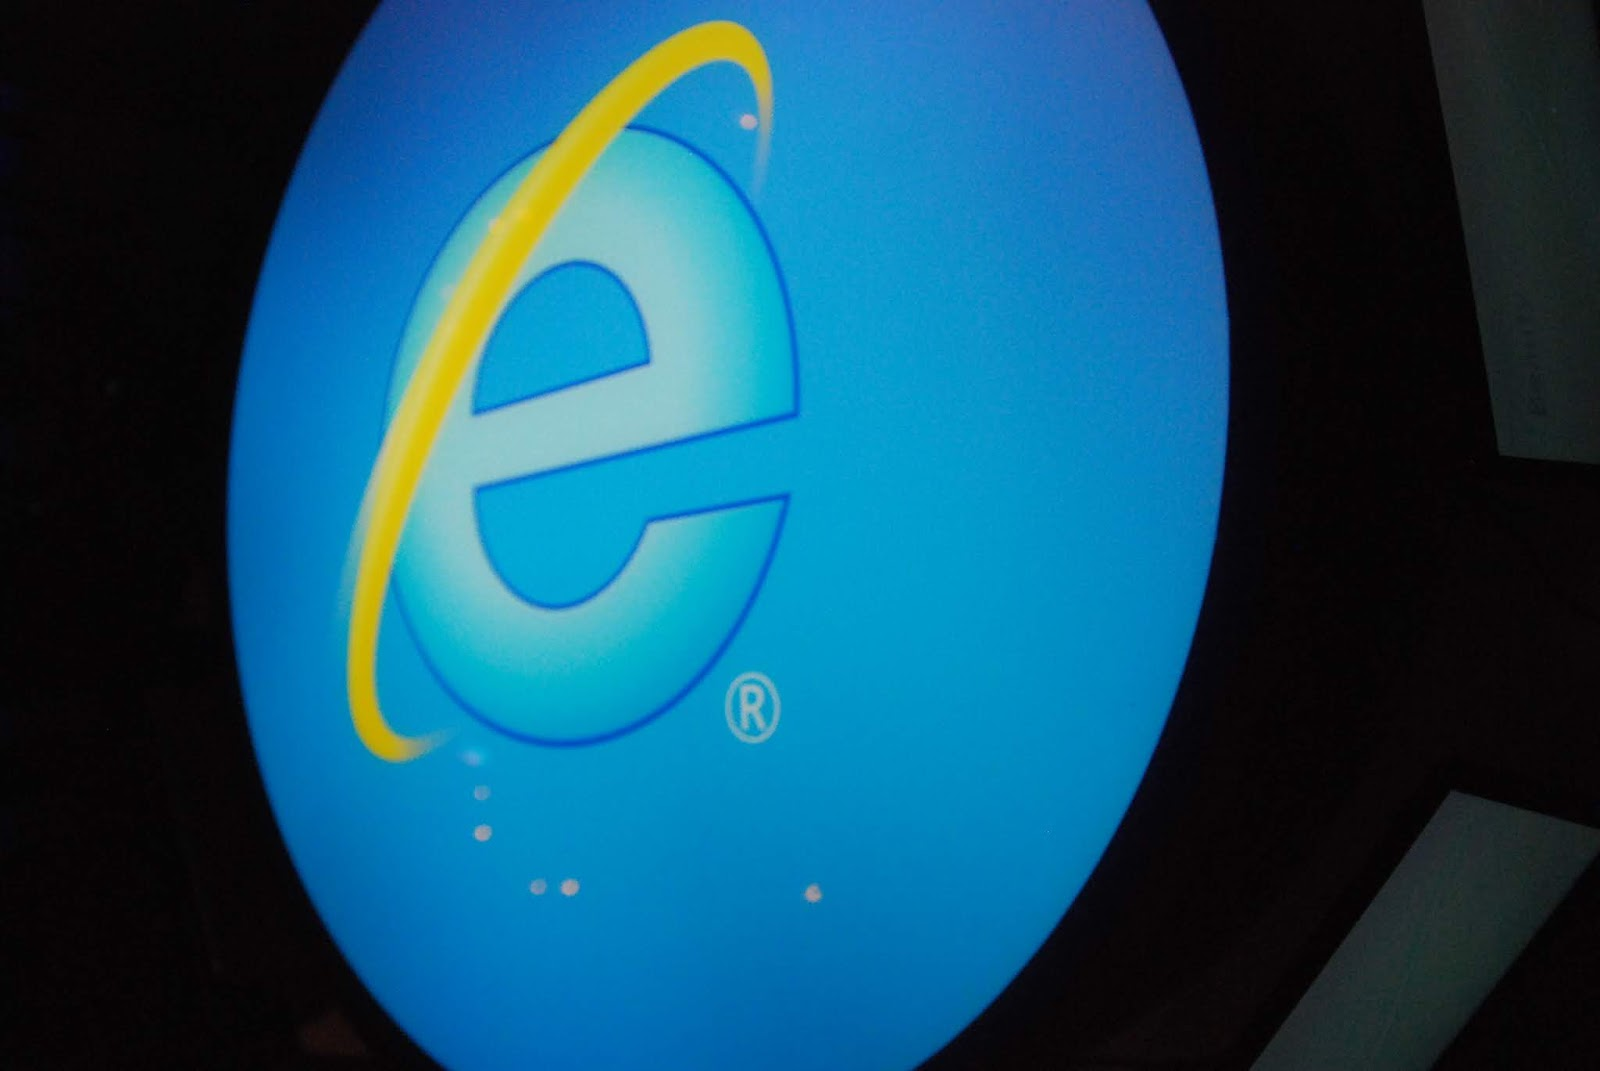 Internet Explorer causes new exploit - Whether you use it or not